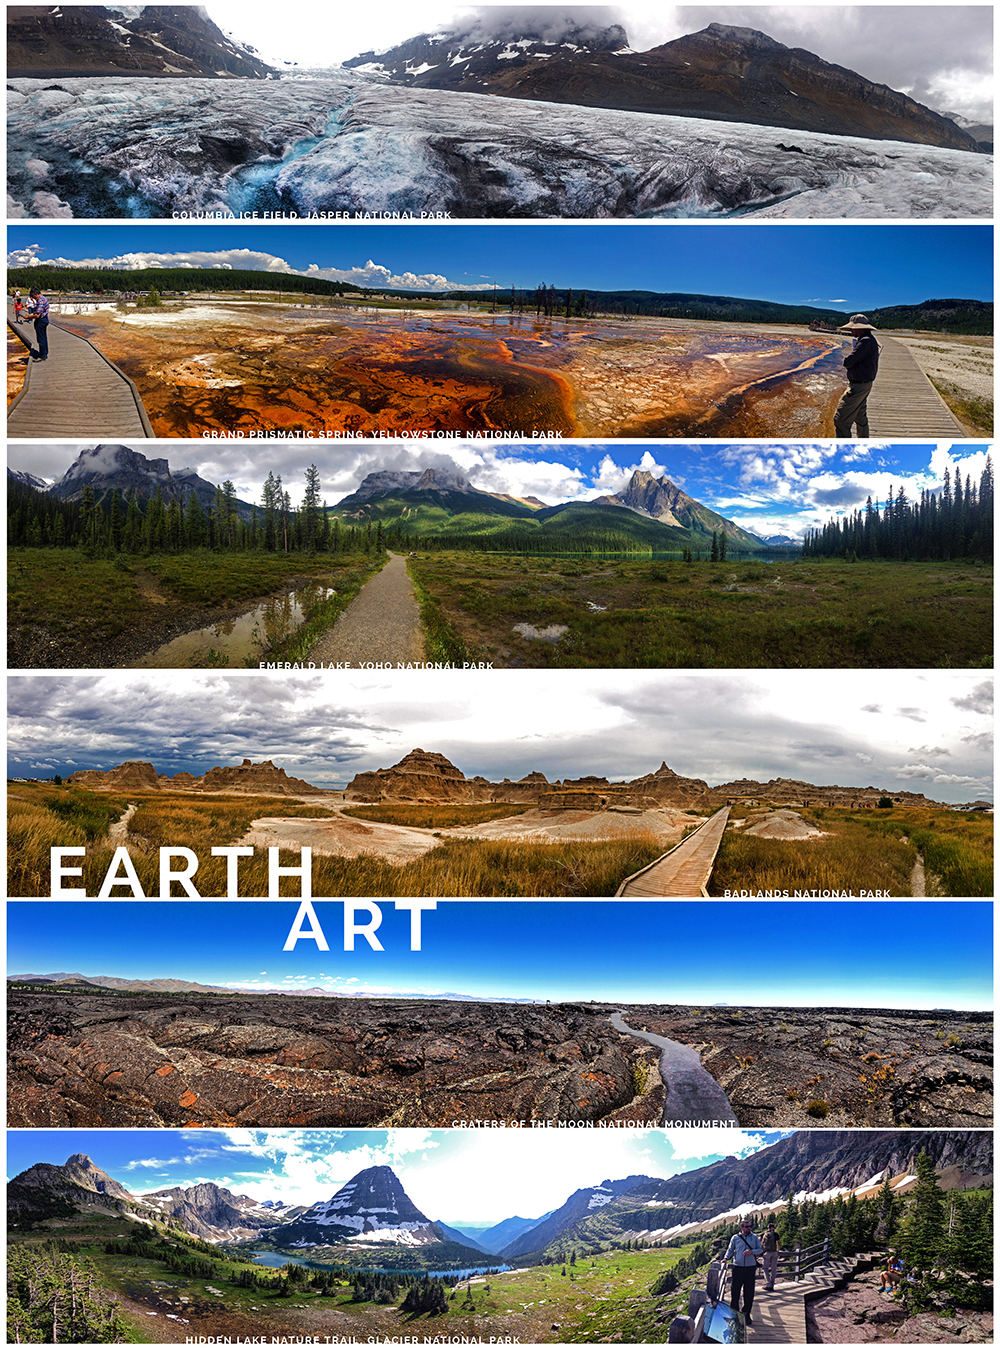 American Southwest 2016 Panorama Poster_02_01